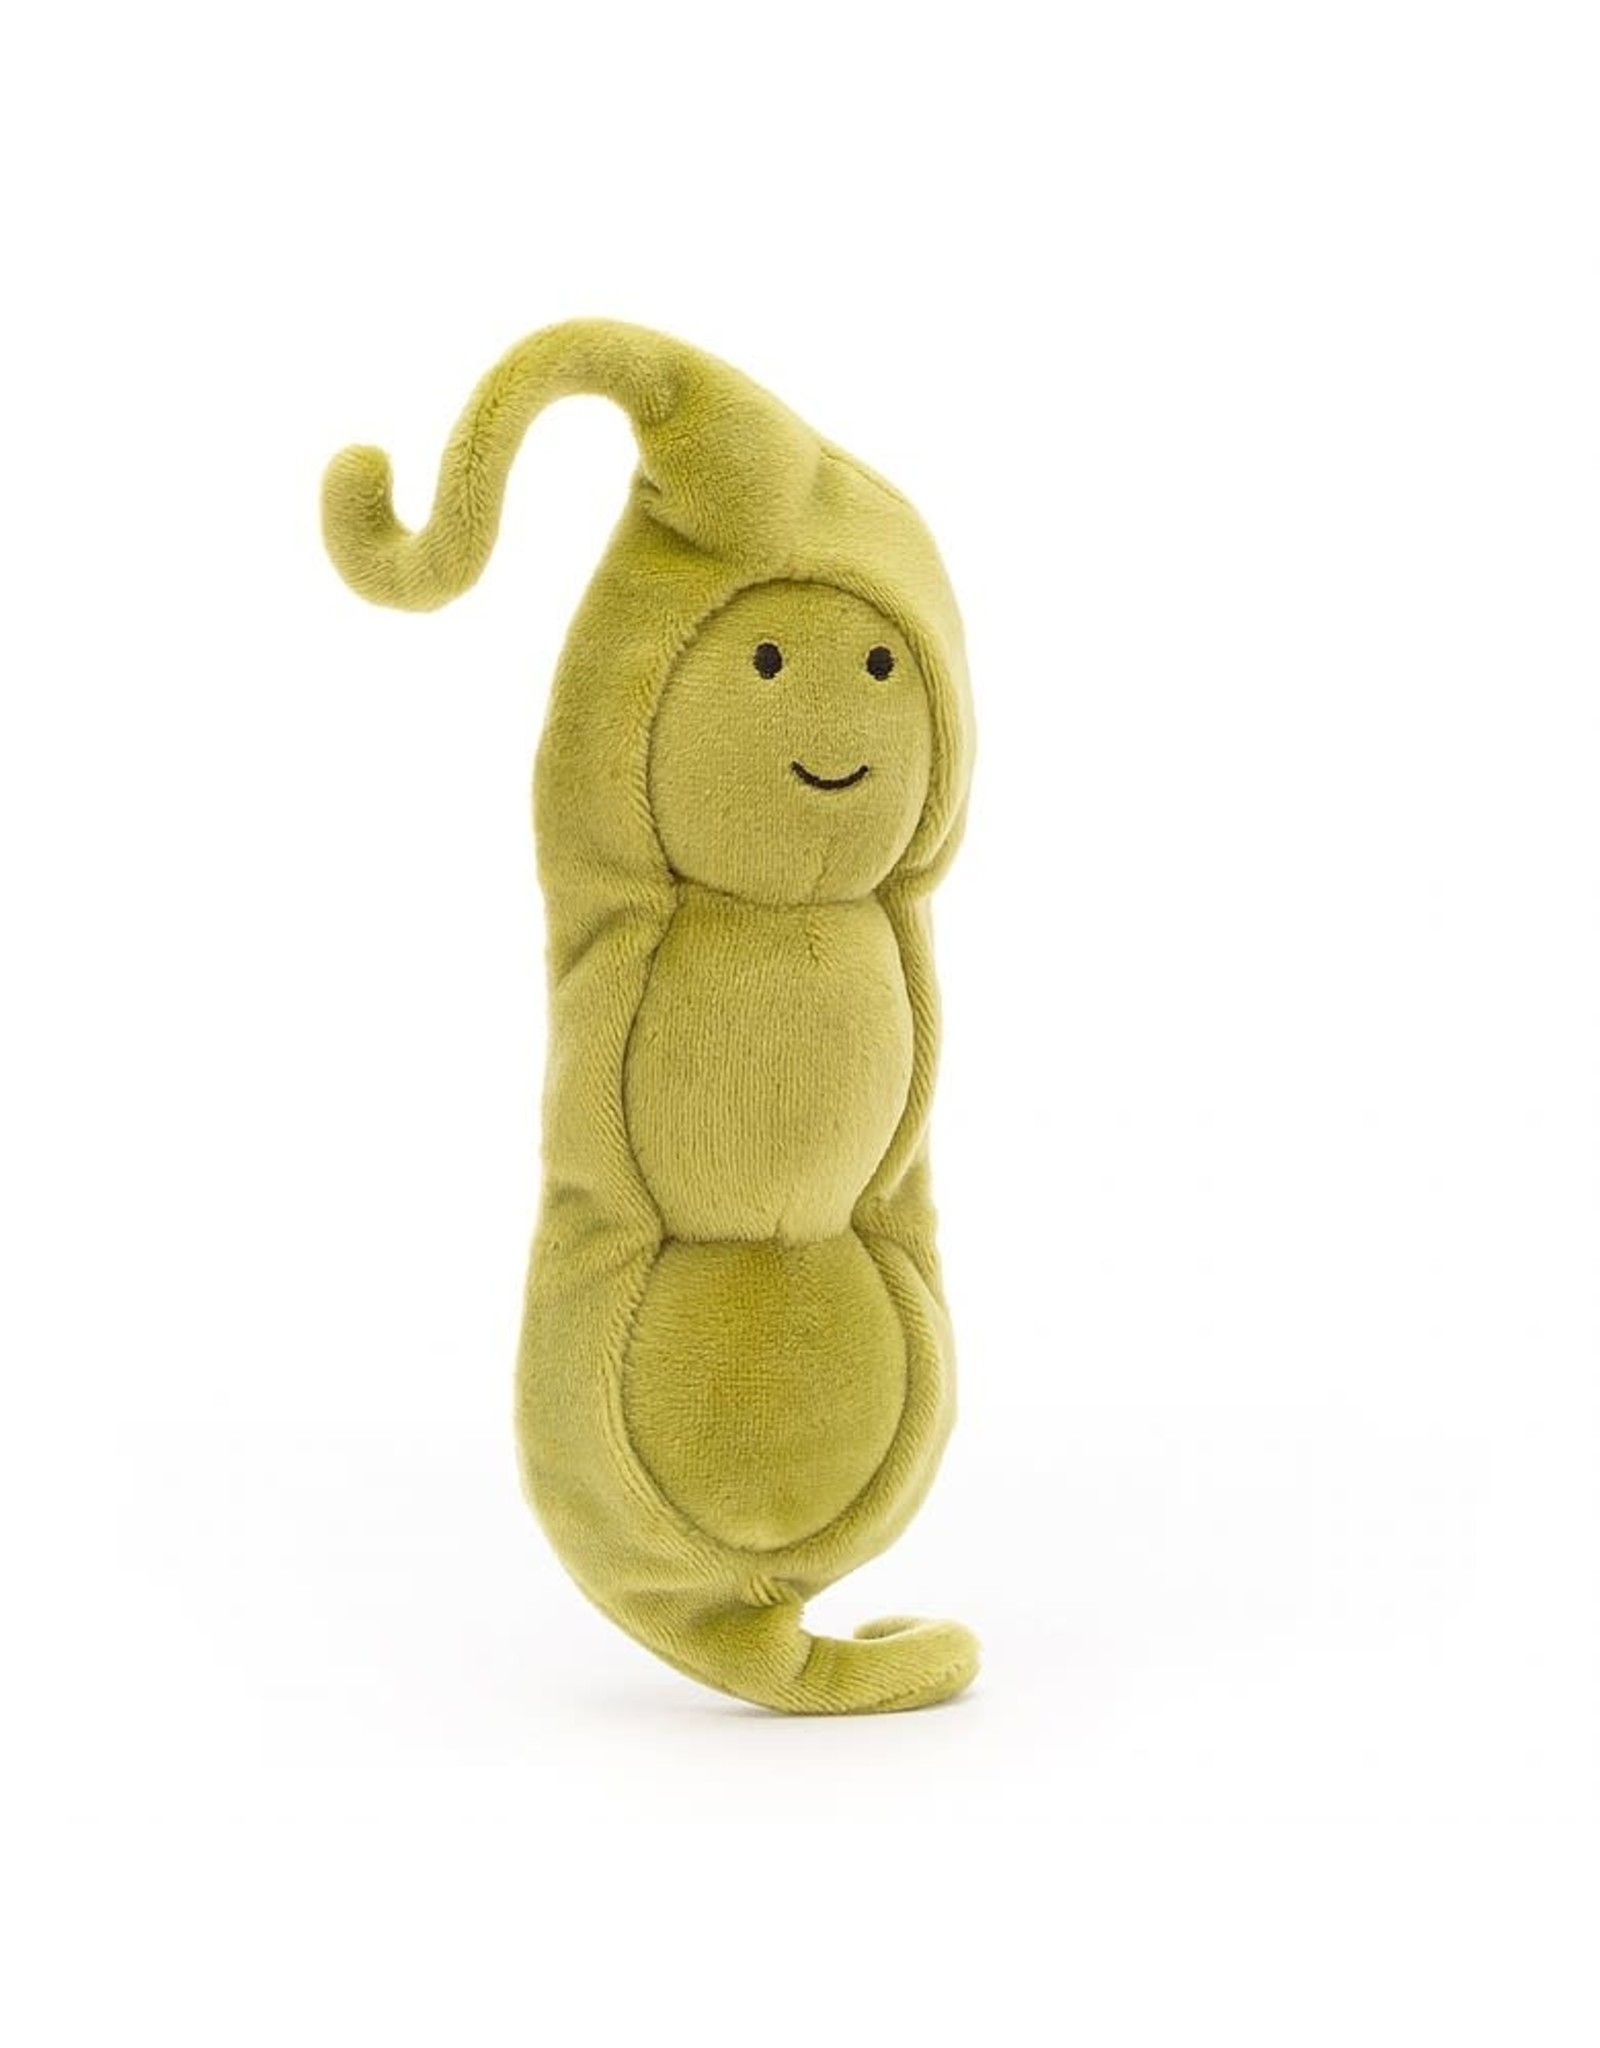 Jellycat JellyCat Vivacious Vegetable Pea